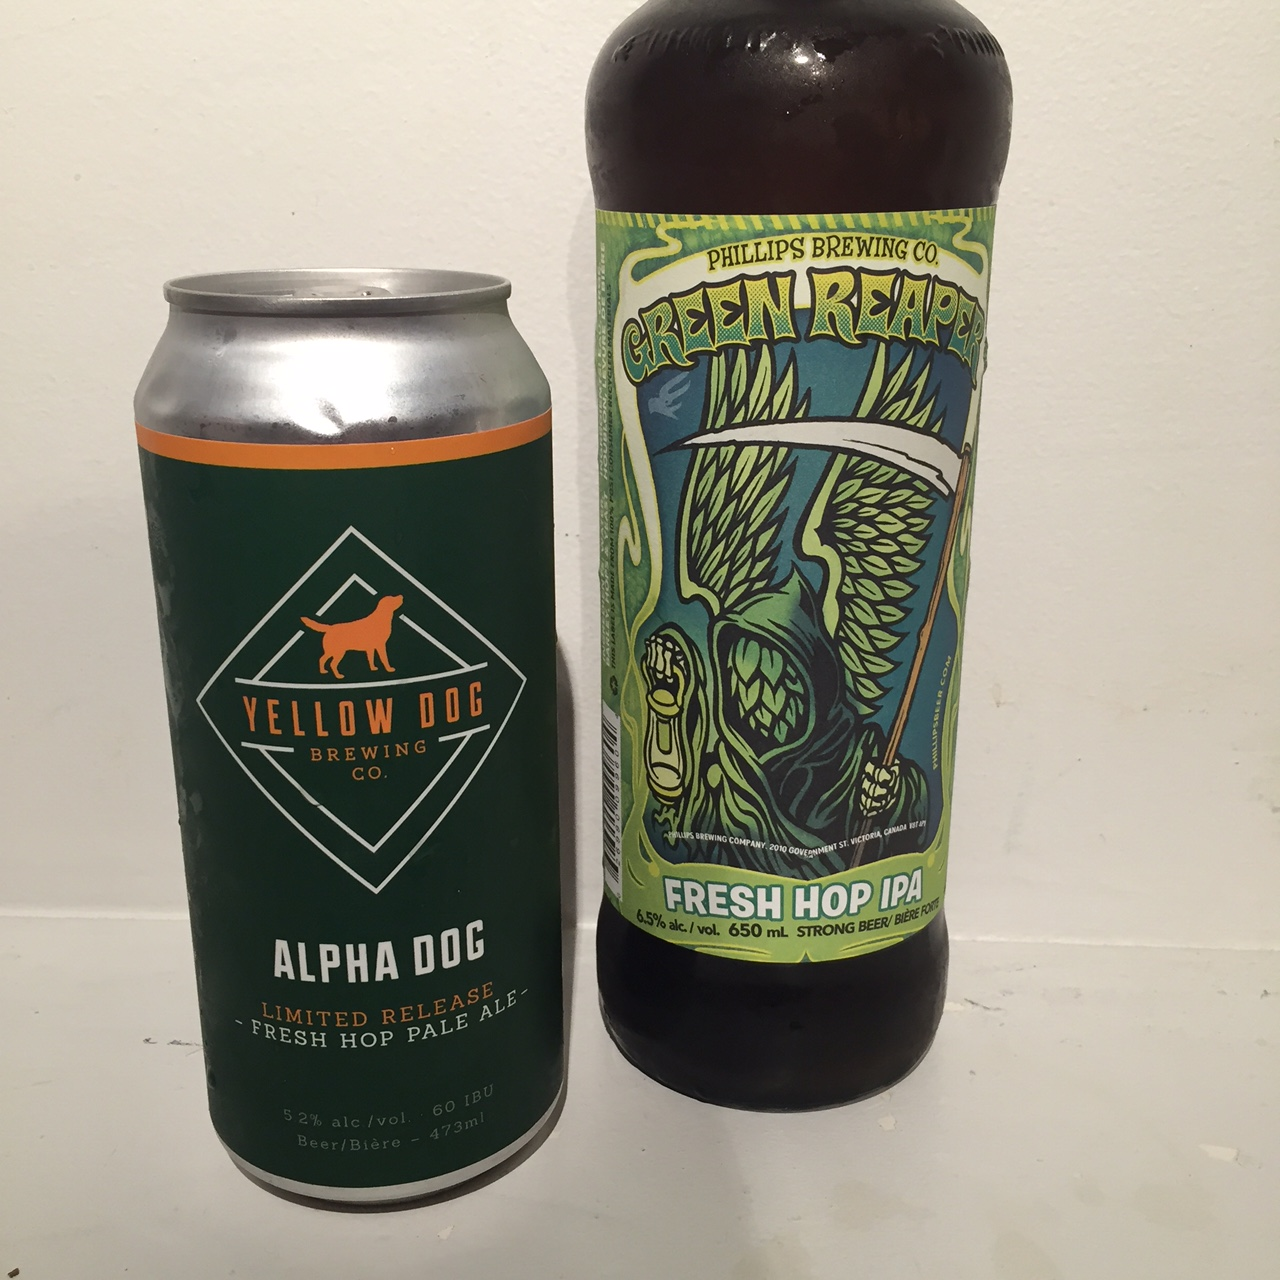 yellow dog port moody phillips victoria fresh hop IPA pale ale